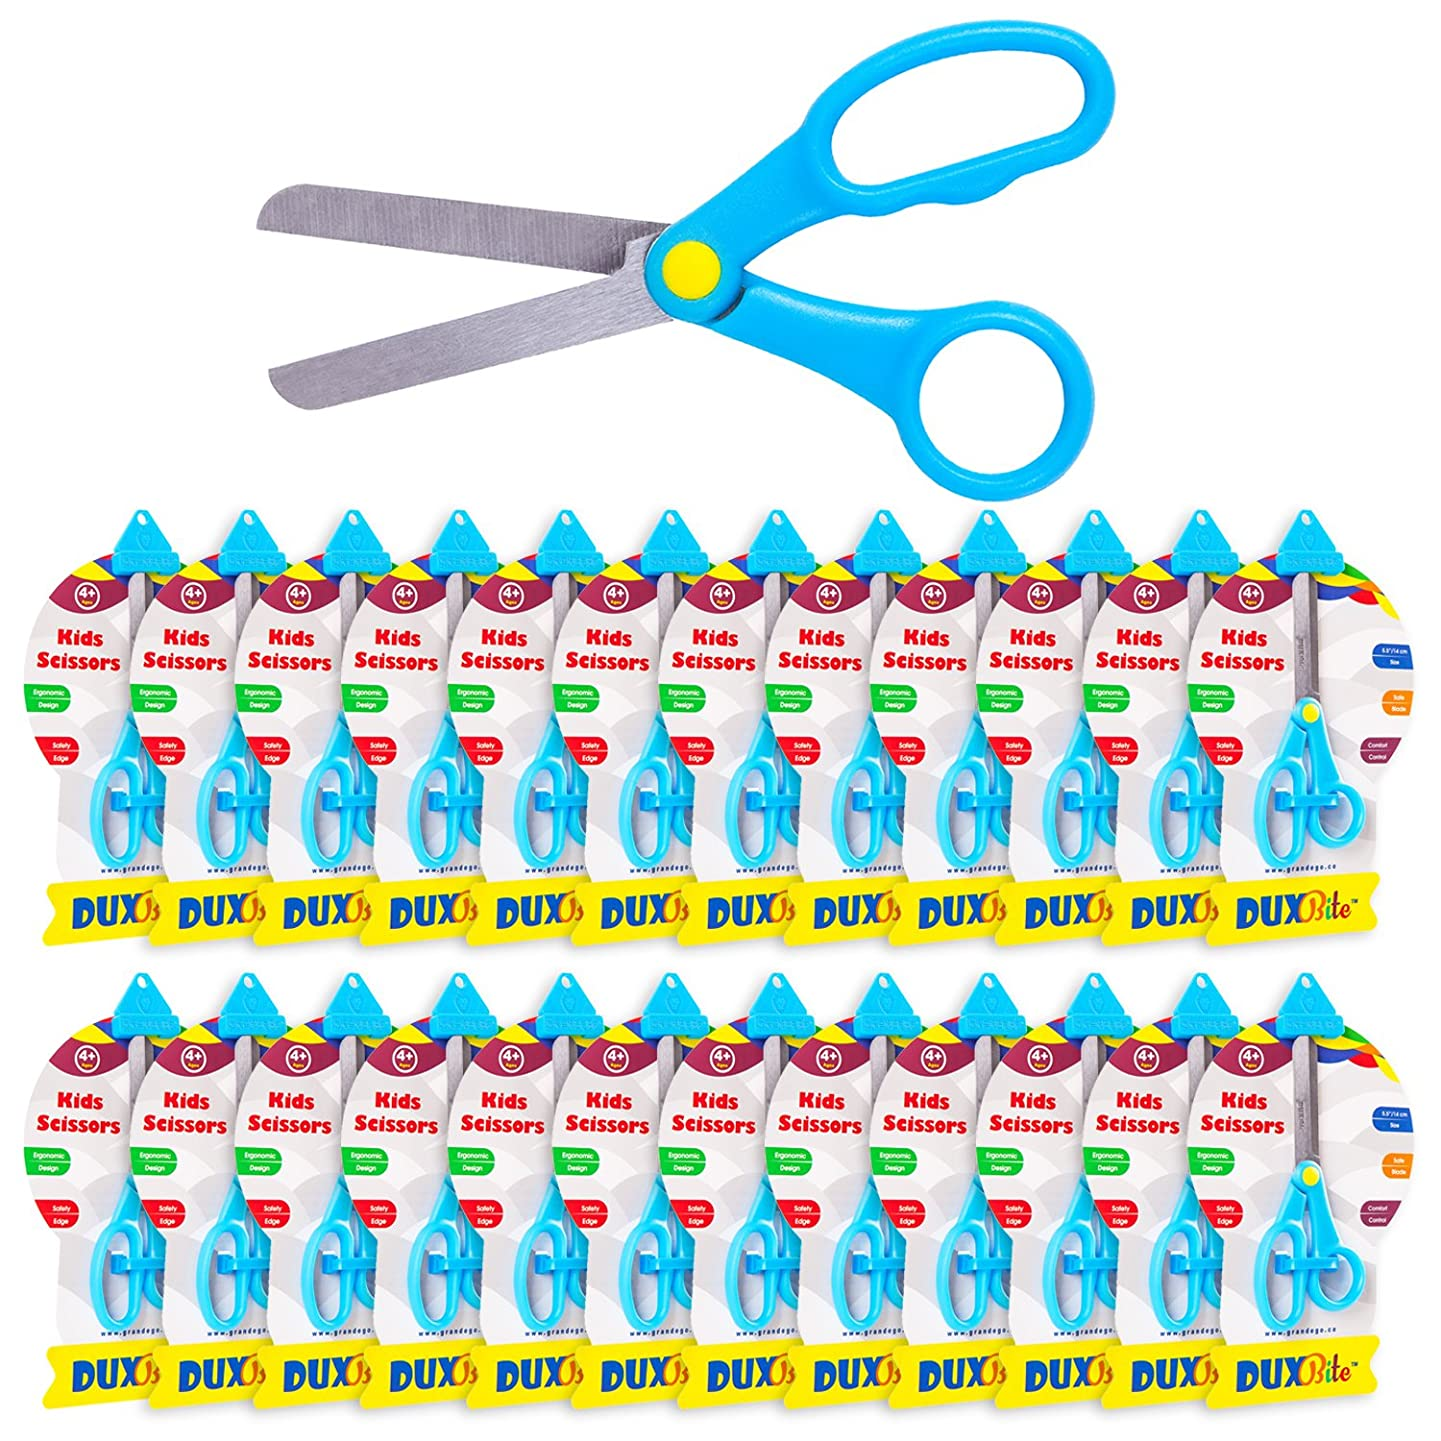 DUXBITE Kids School Safety 5.5 Inch Scissors | Bulk Pack of 24- Blunt Tip and Safe Blade Angle – Large Finger Loops for Comfort & Control – Perfect for Crafts, Cutting Paper & Classroom Use – Ages 4 +